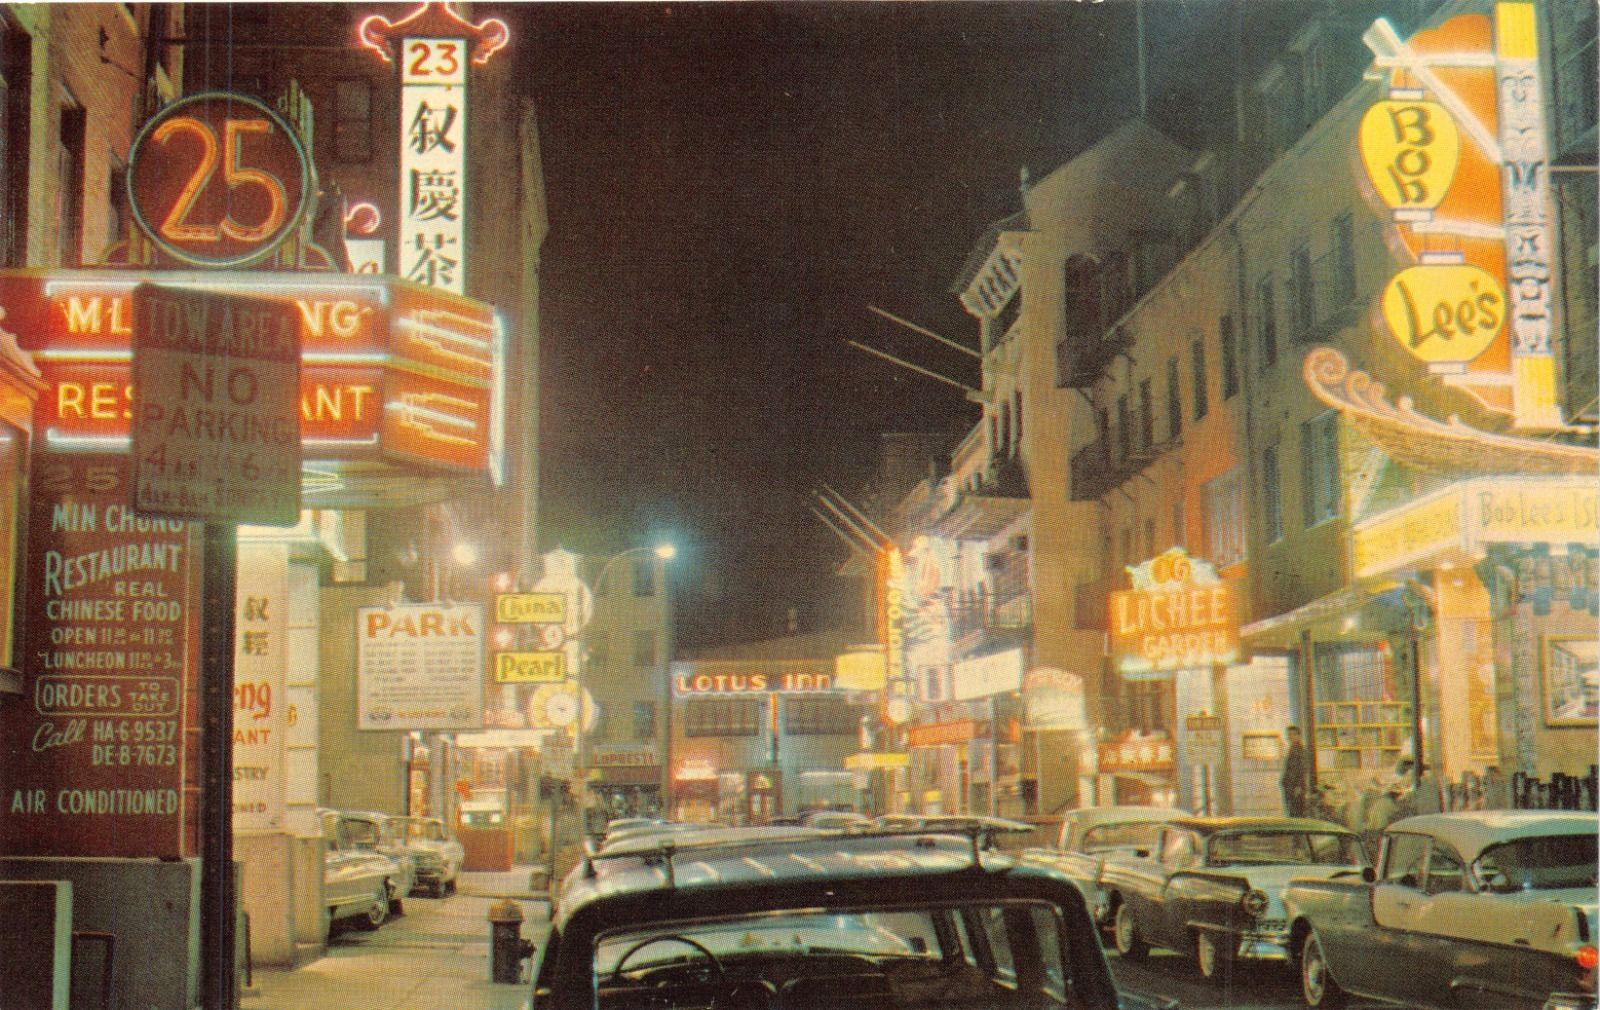 Boston Ma Chinatown At Night Brilliantly Illuminated Alice Chin Postcard 1950s Hippostcard